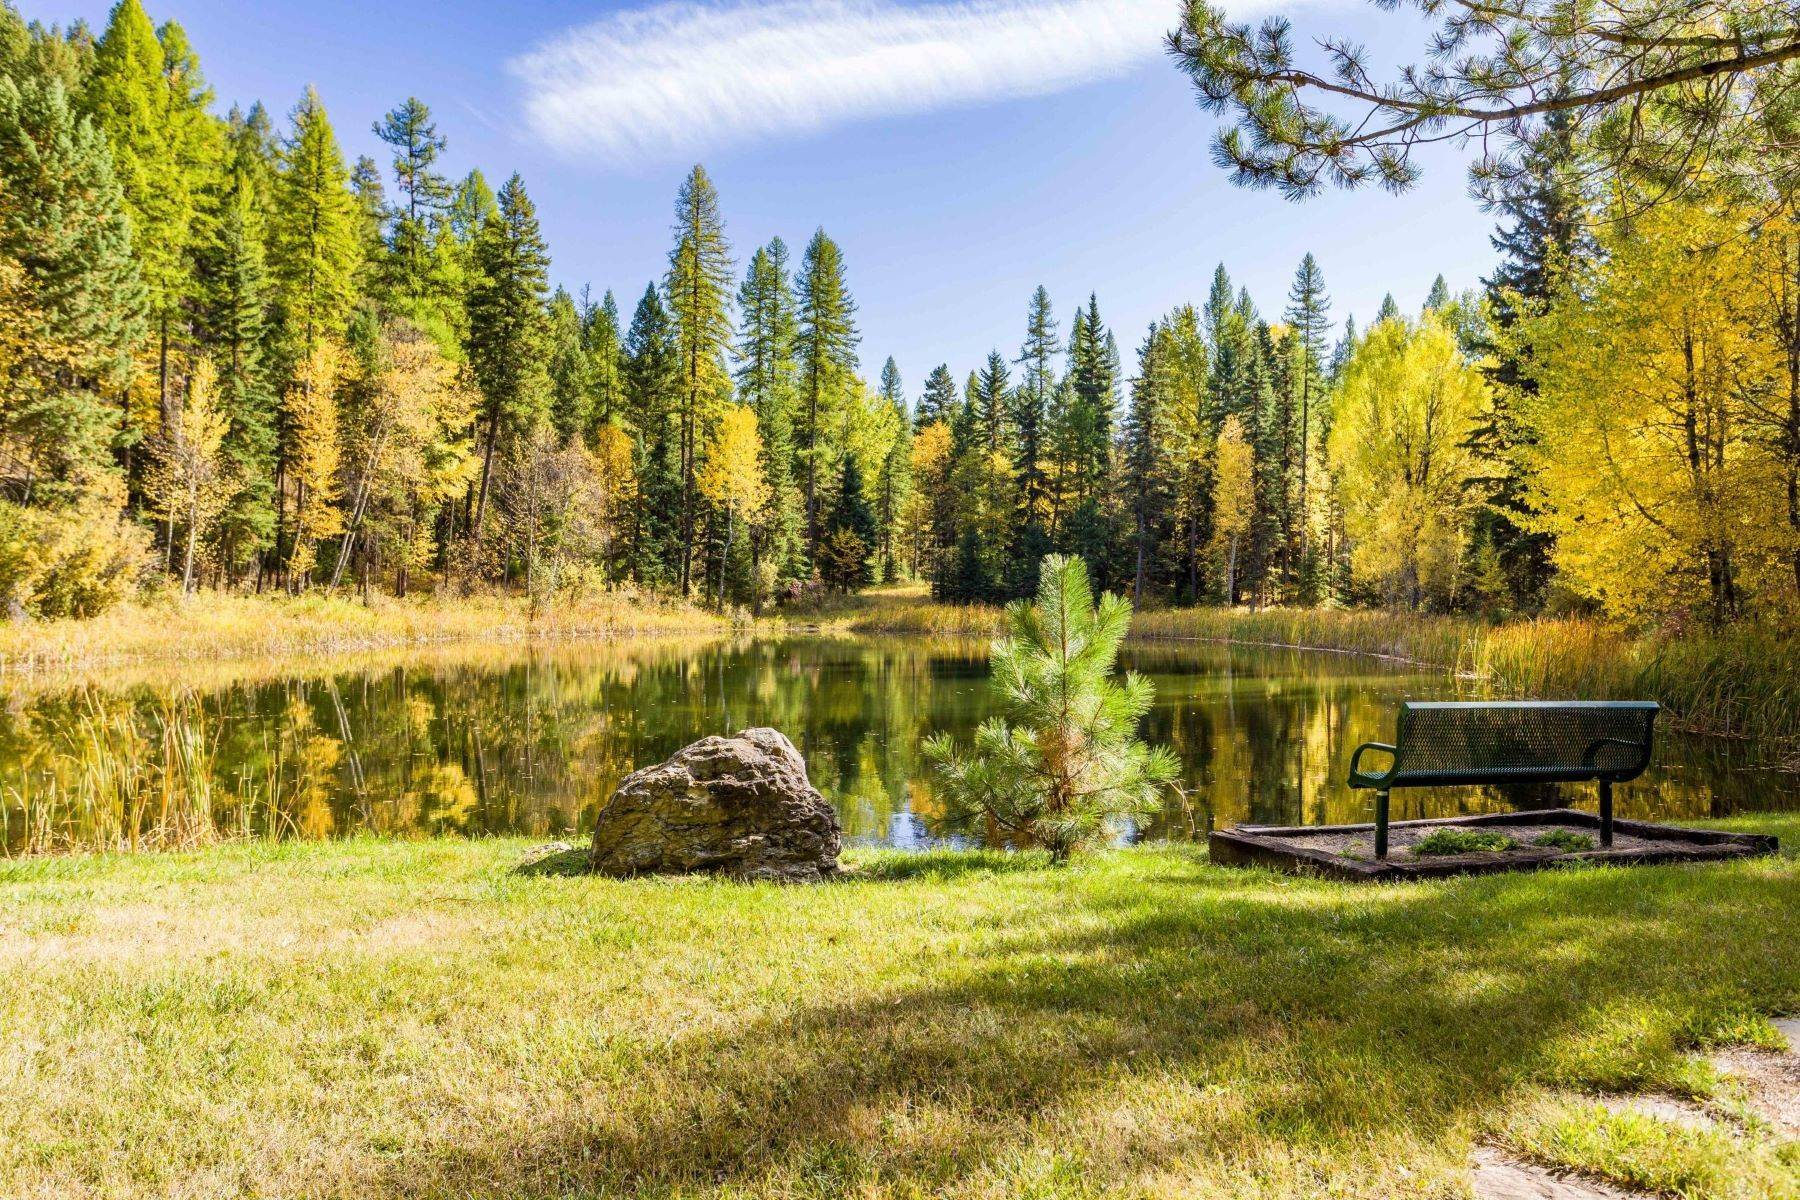 6. Land for Sale at Northwest Montana Forest, Meadows and Ponds 295 Garland Lane Whitefish, Montana 59937 United States